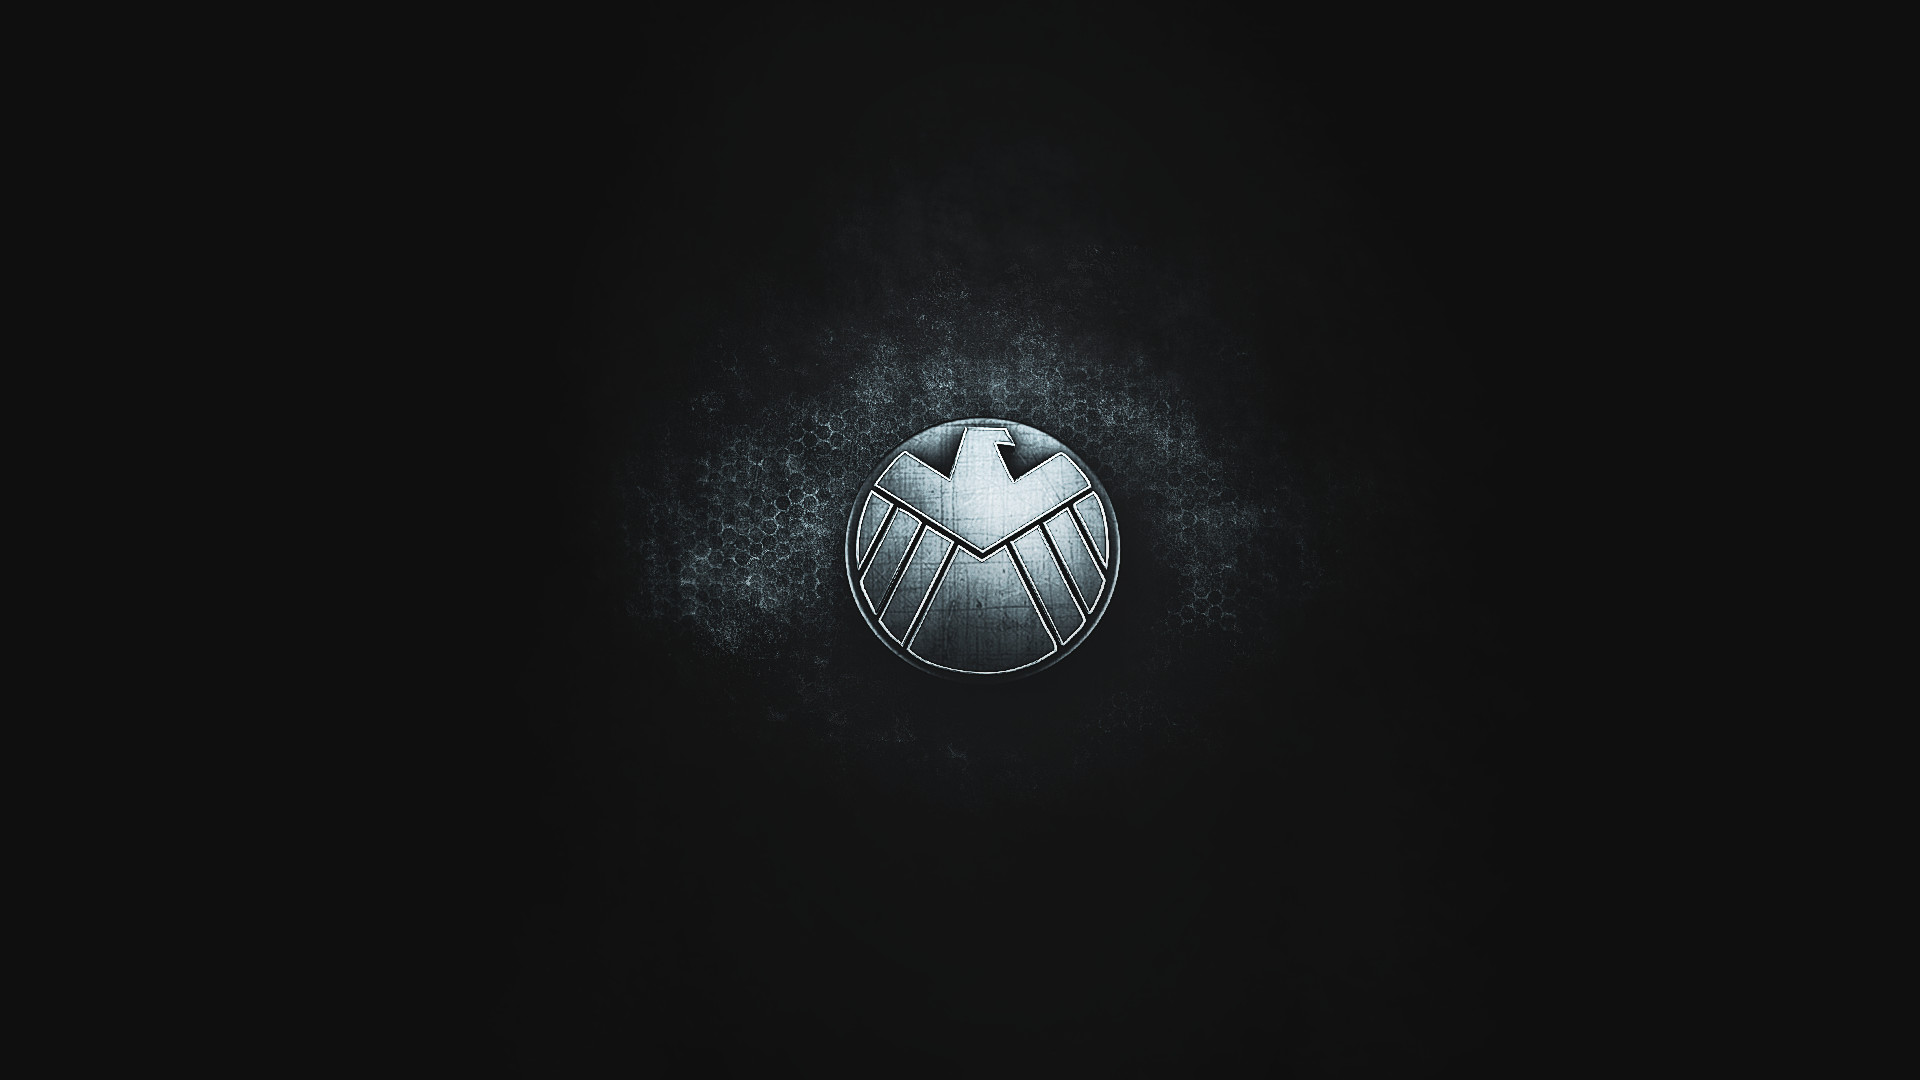 1920x1080 agents of shield widescreen hd wallpapers images